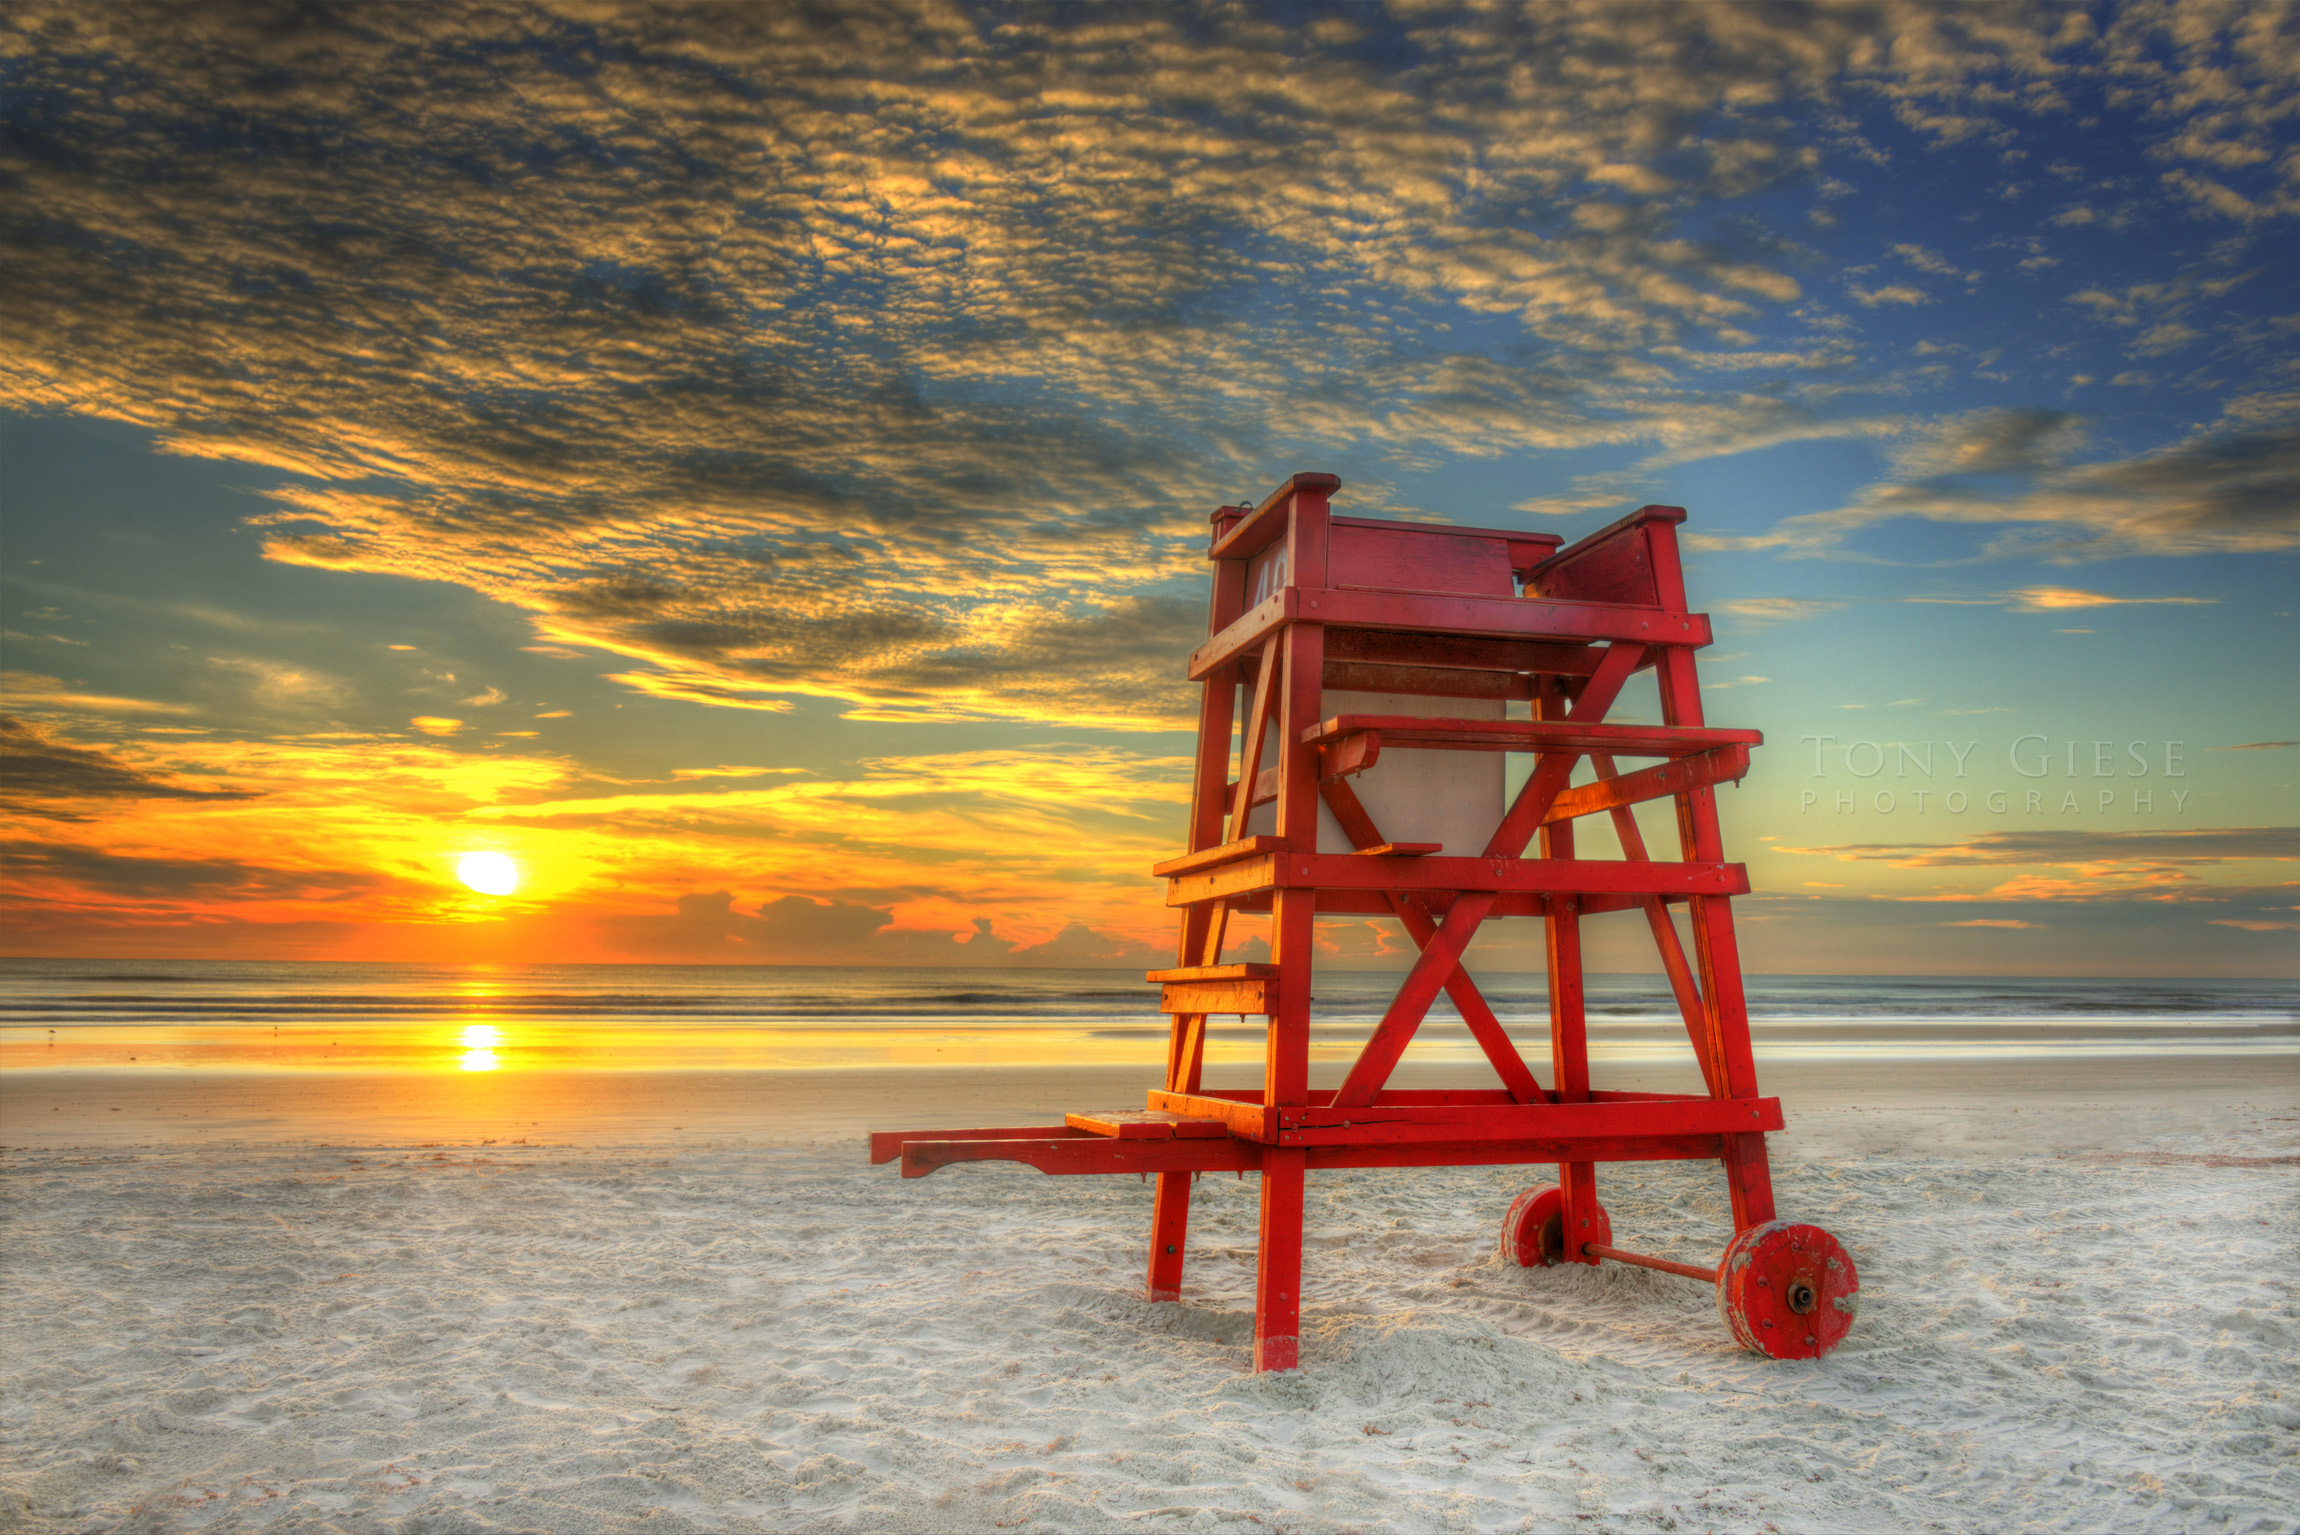 Life guard stand on New Smyrna Beach, Florida. Photography by Tony Giese